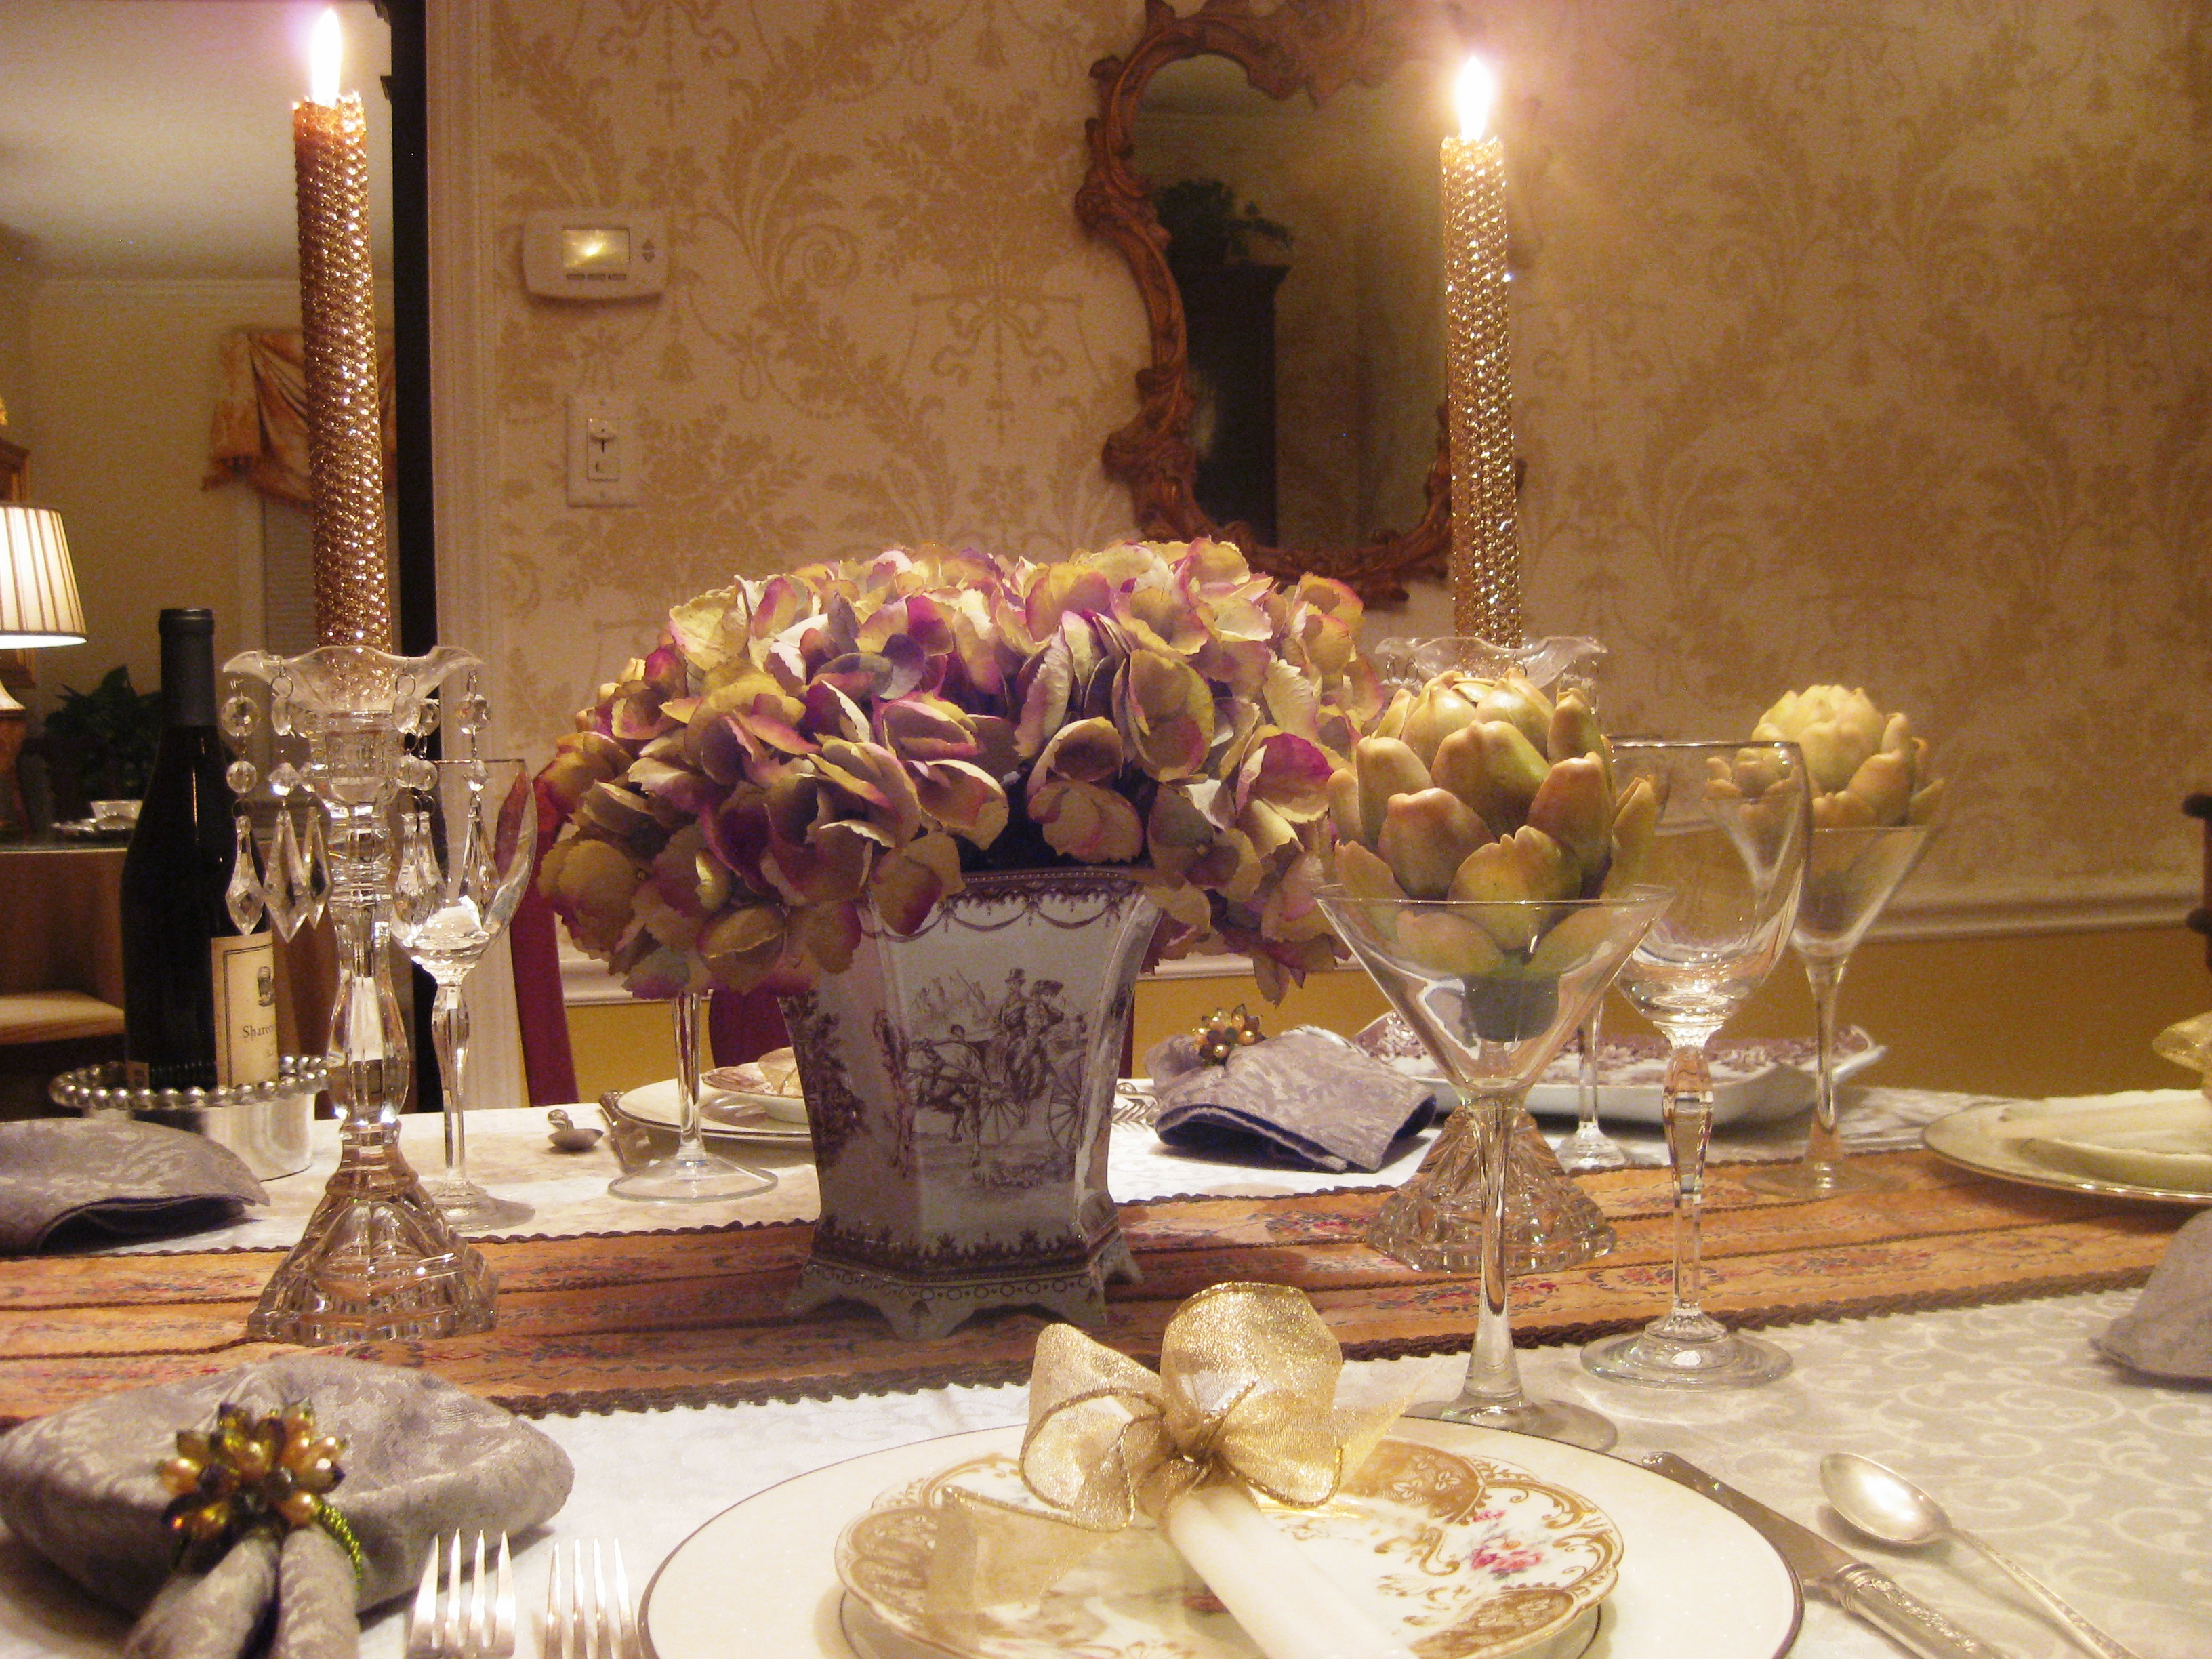 Kitchen Sink Hockessin Picture On Casual Dinner Party Tablescape With Kitchen Sink Hockessin